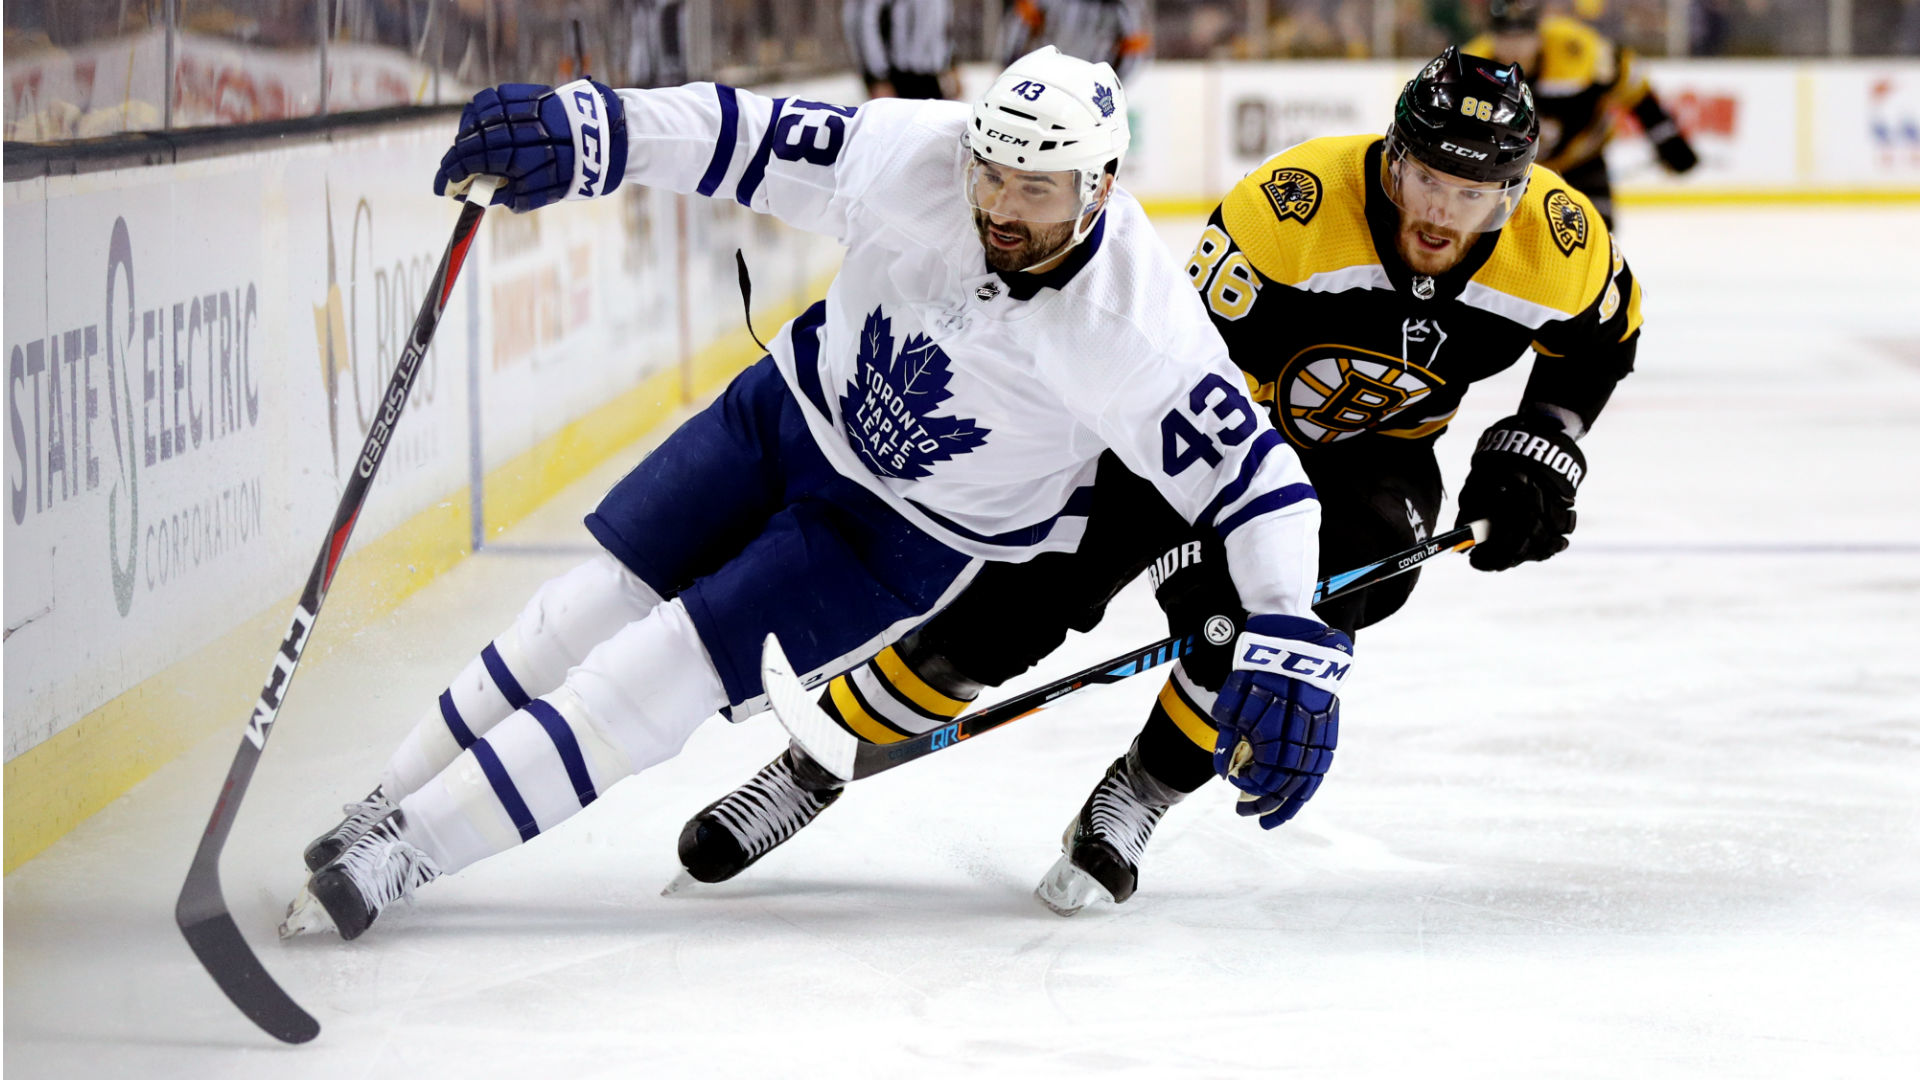 Andersen superb as Maple Leafs beat Bruins to force Game 7